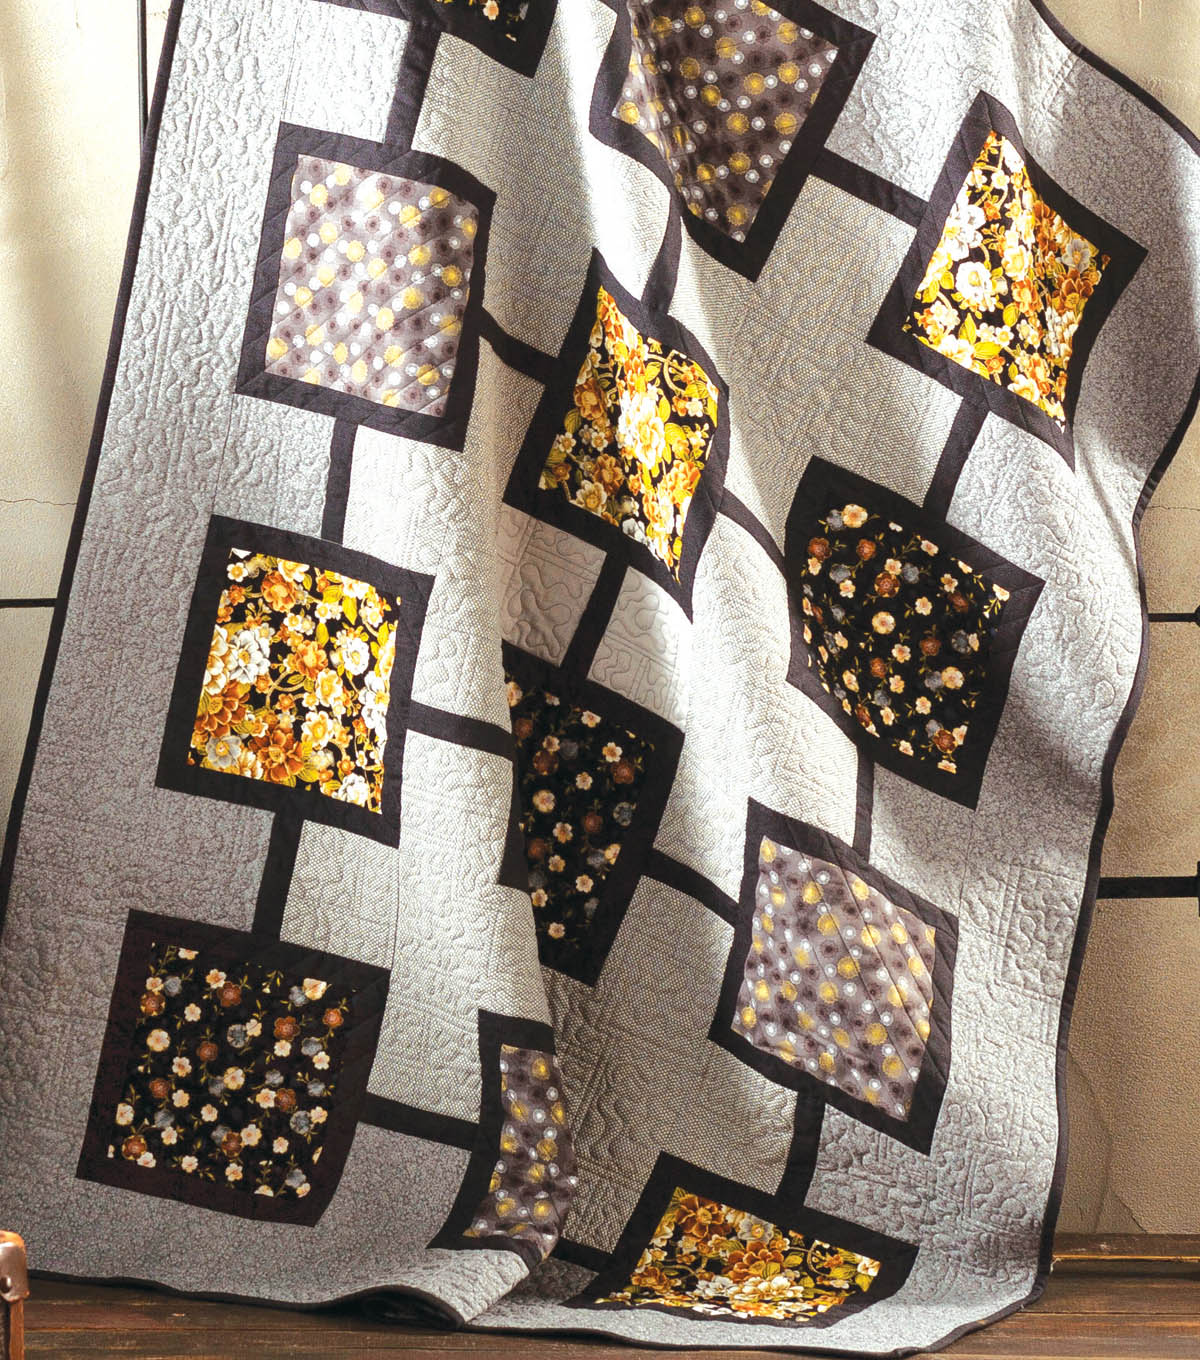 Jo Ann Fabrics And Crafts Mall: Squares Quilt